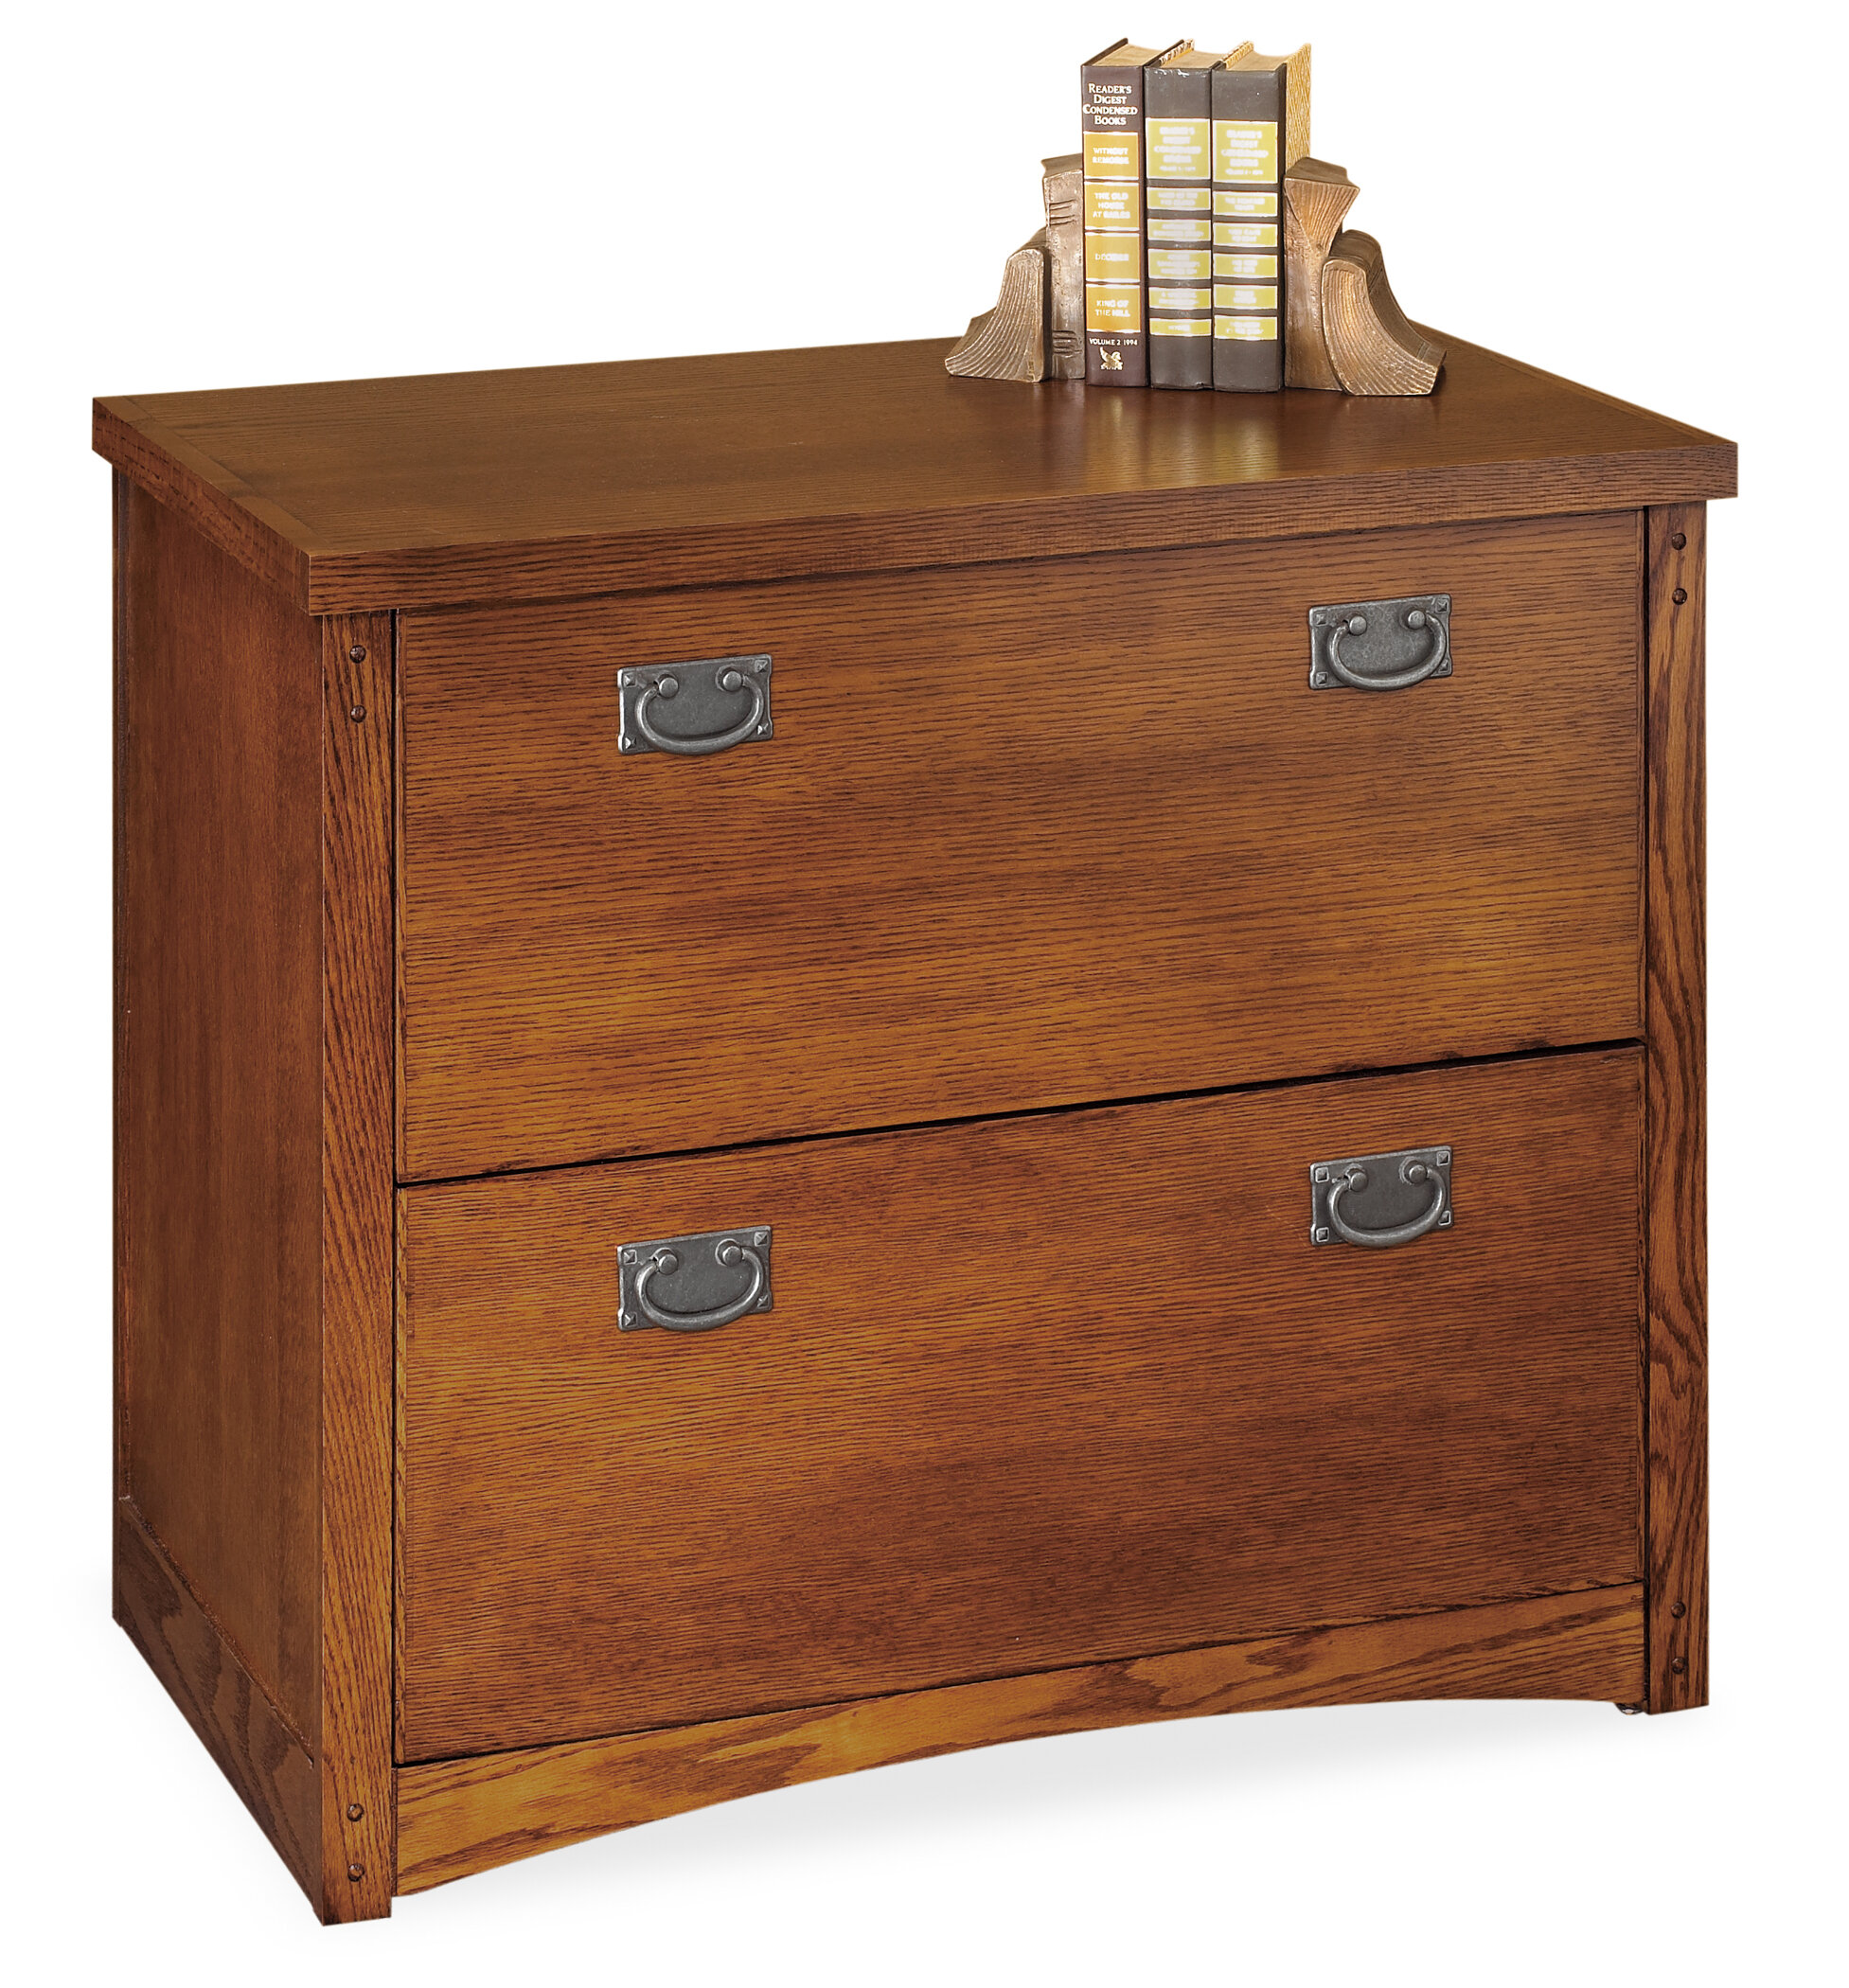 Martin Home Furnishings Mission Pasadena 2-Drawer Lateral File Cabinet u0026 Reviews | Wayfair  sc 1 st  Wayfair & Martin Home Furnishings Mission Pasadena 2-Drawer Lateral File ...